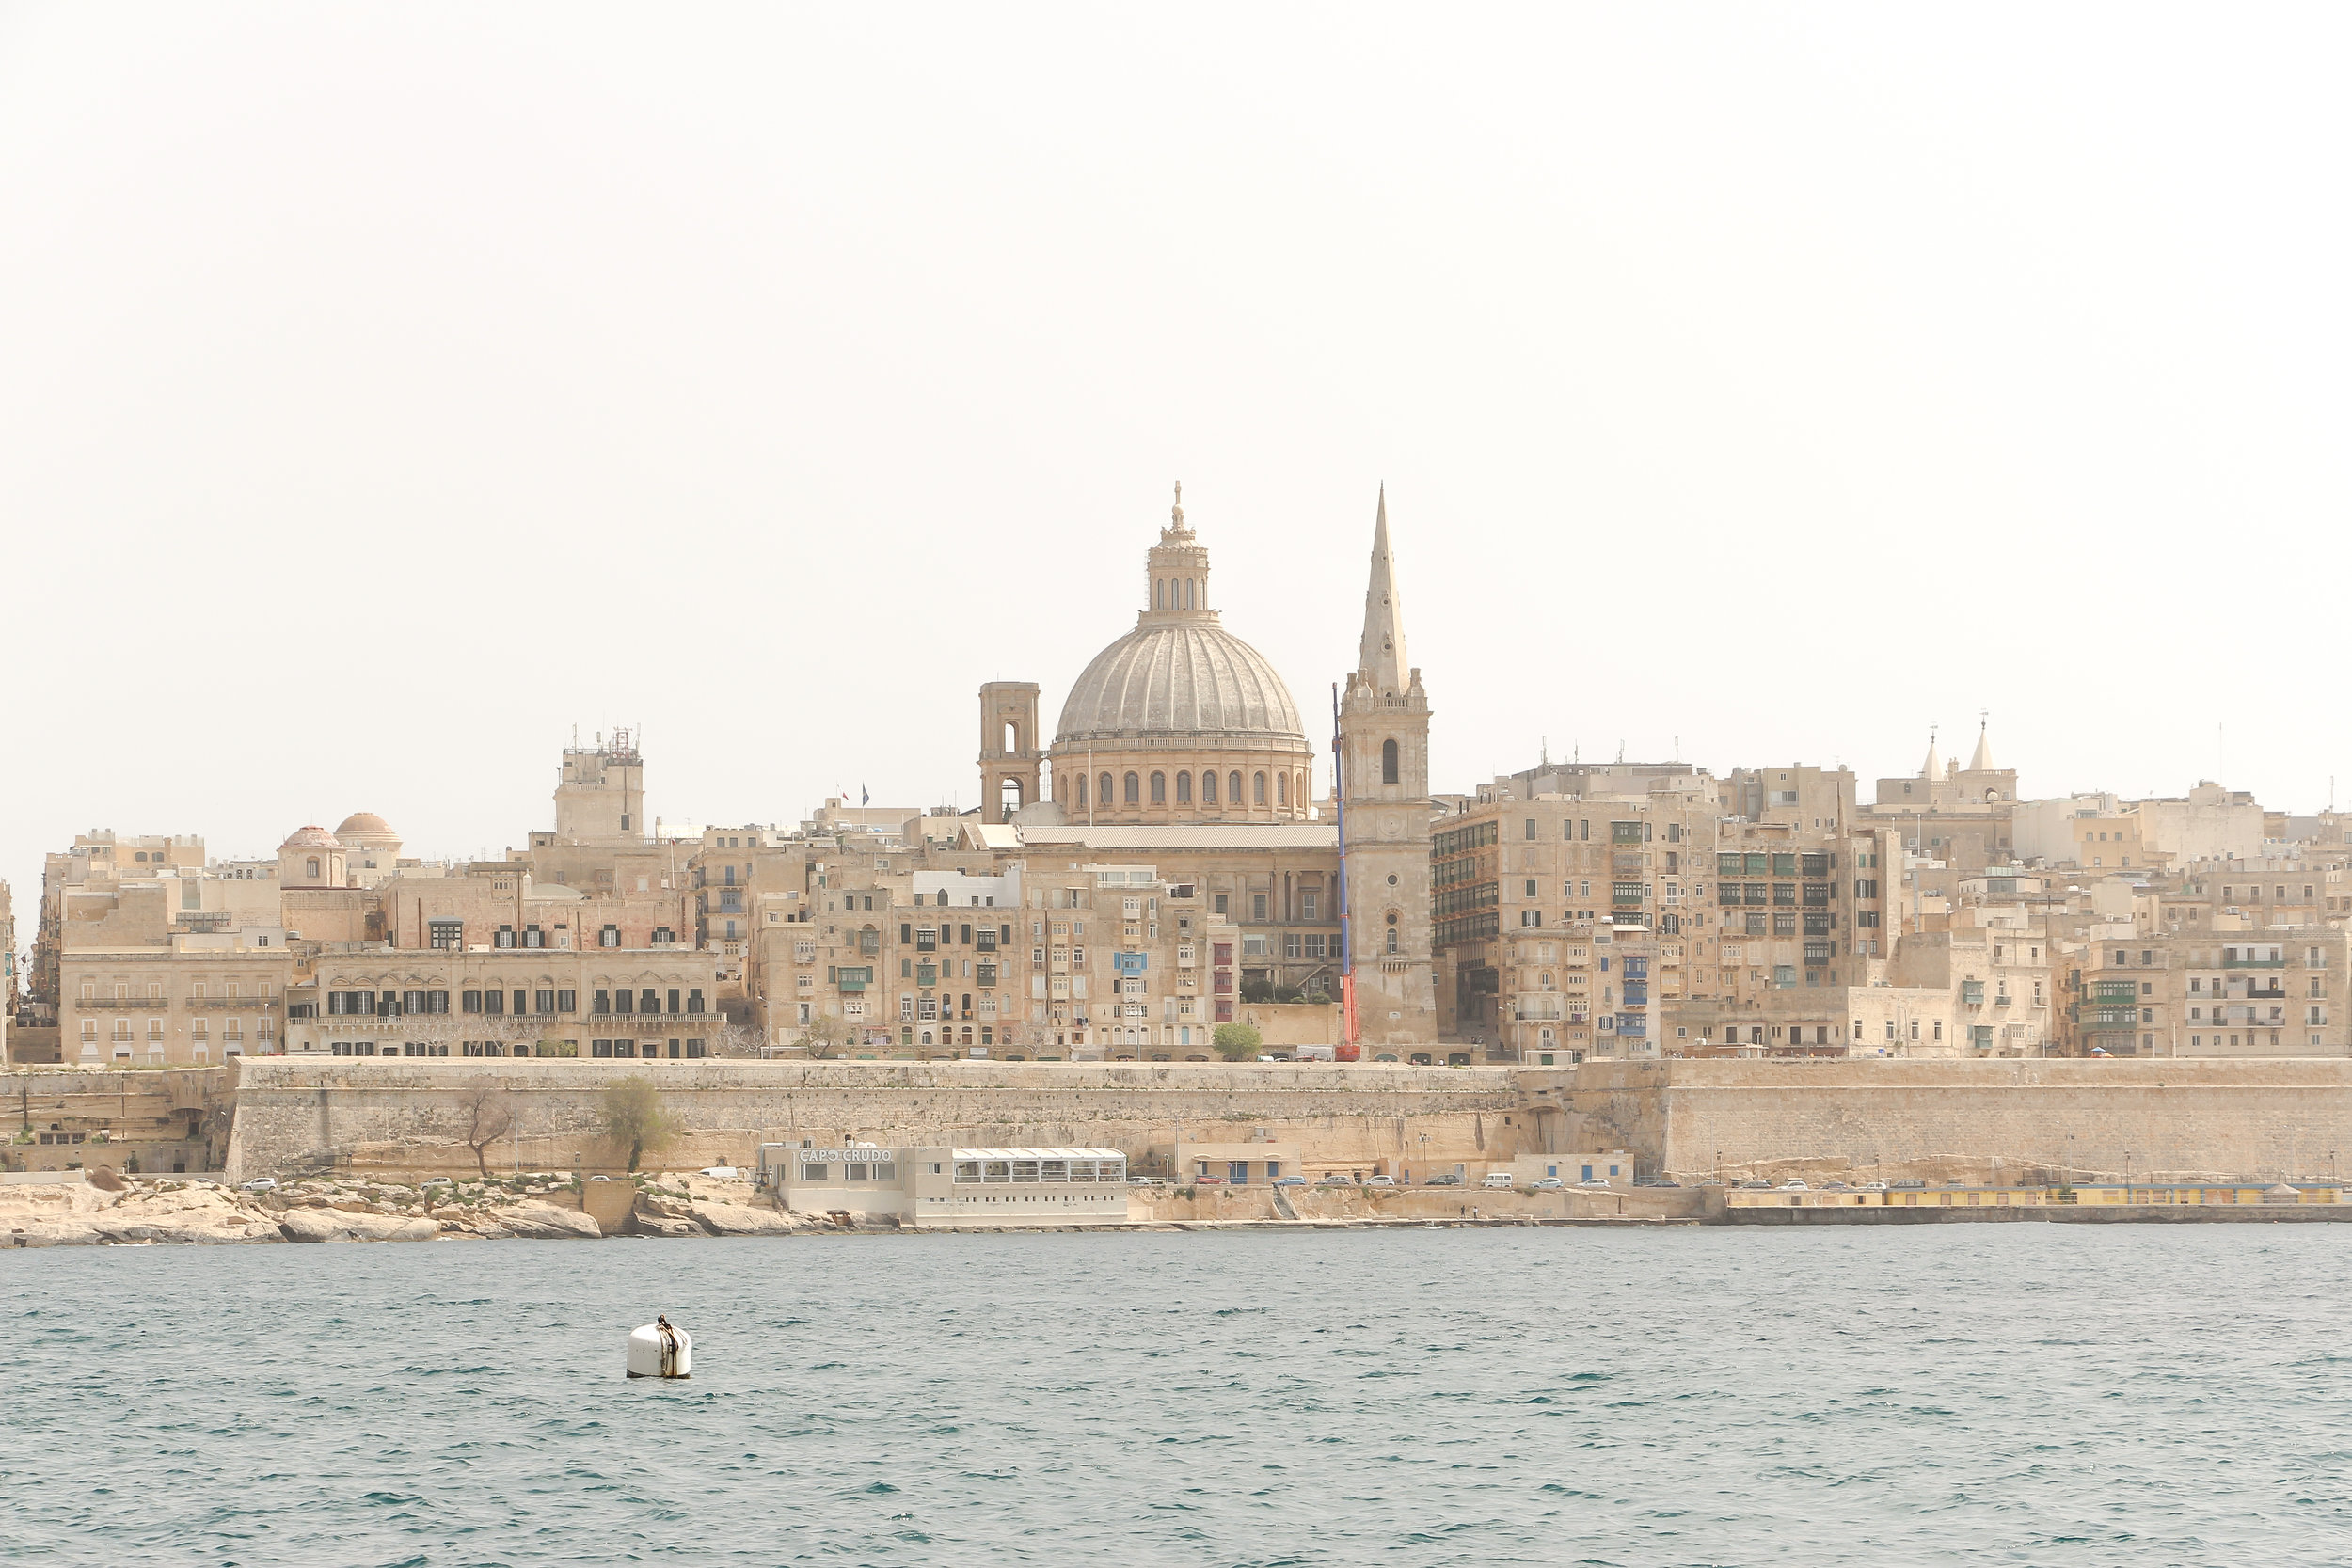 Old Town of Valletta | Carmelite Church, the tower of St Paul's Pro-Cathedral | and the Mediterranean Sea | - Thinking about appreciation for quality in Malta | Malta, Europe | DoLessGetMoreDone.com | - Canon Travel Documentary Photography - search for liveability | Sustainability